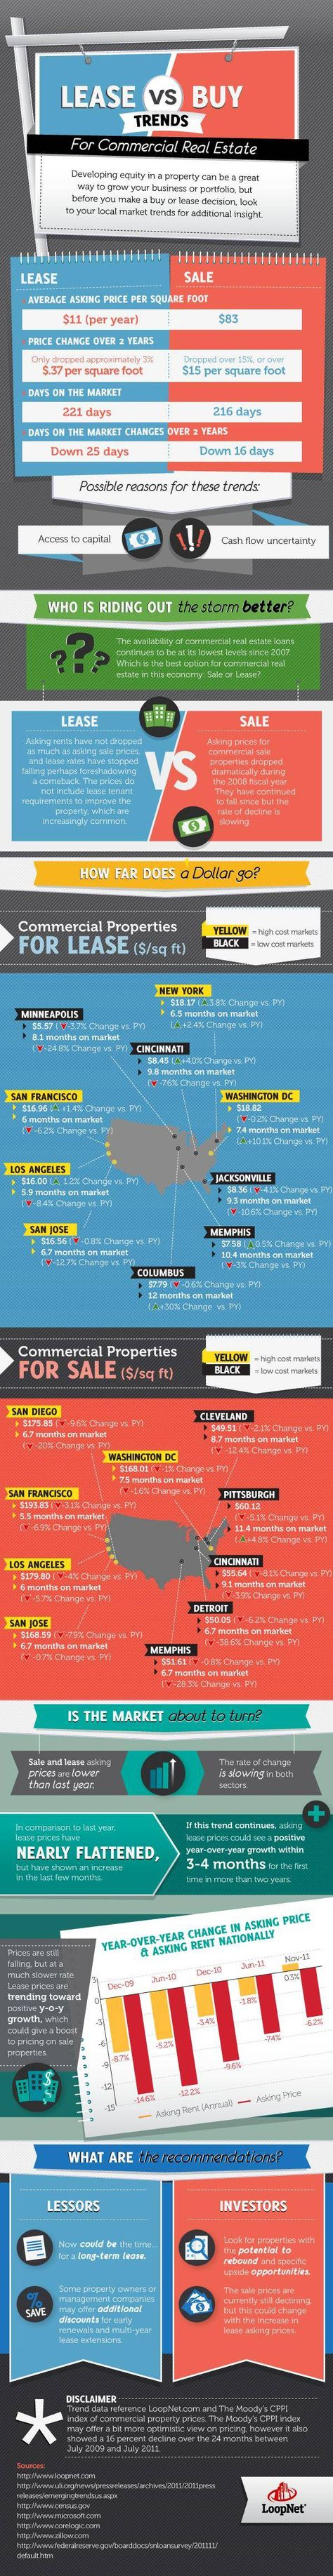 buy lease commercial property A real estate commercial lease is an agreement for use of a space for business purposes in return for an amount agreed to be payable as rent the person who owns the property for rent is called a lessor and the person who leases the property is called a.